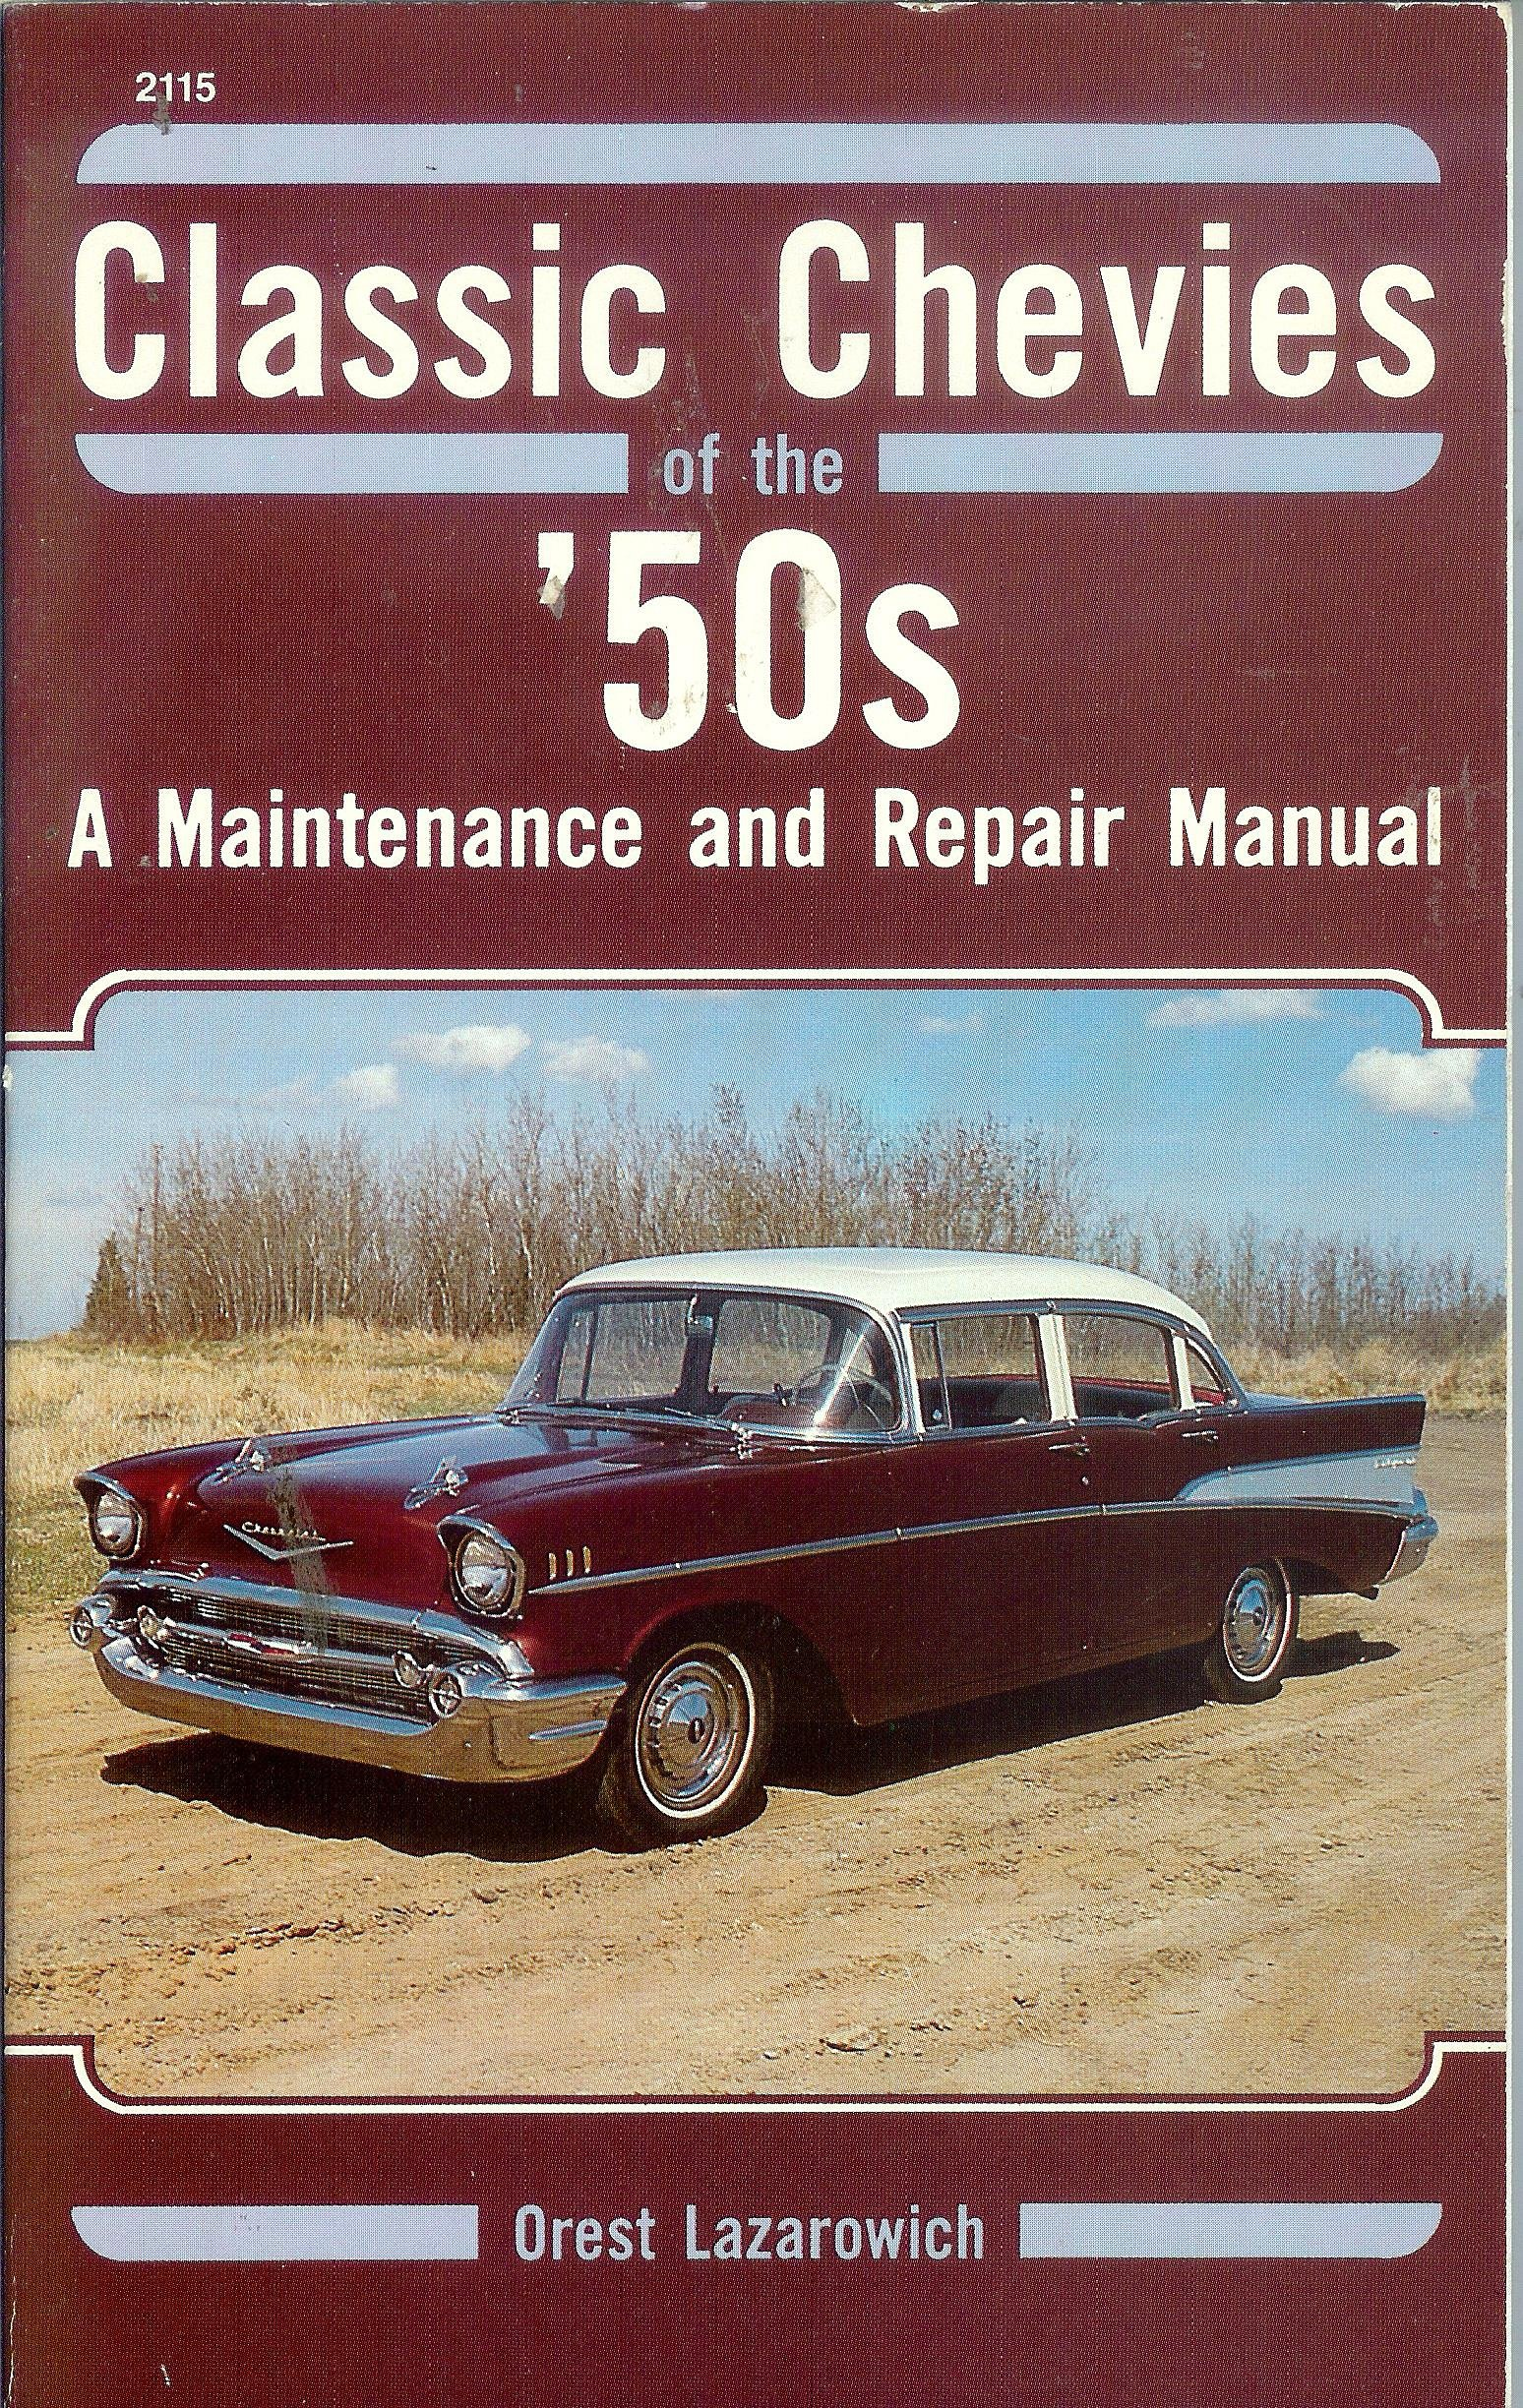 Classic Chevies of the '50's: A Maintenance and Repair Manual: Orest  Lazarowich: 9780830621156: Amazon.com: Books